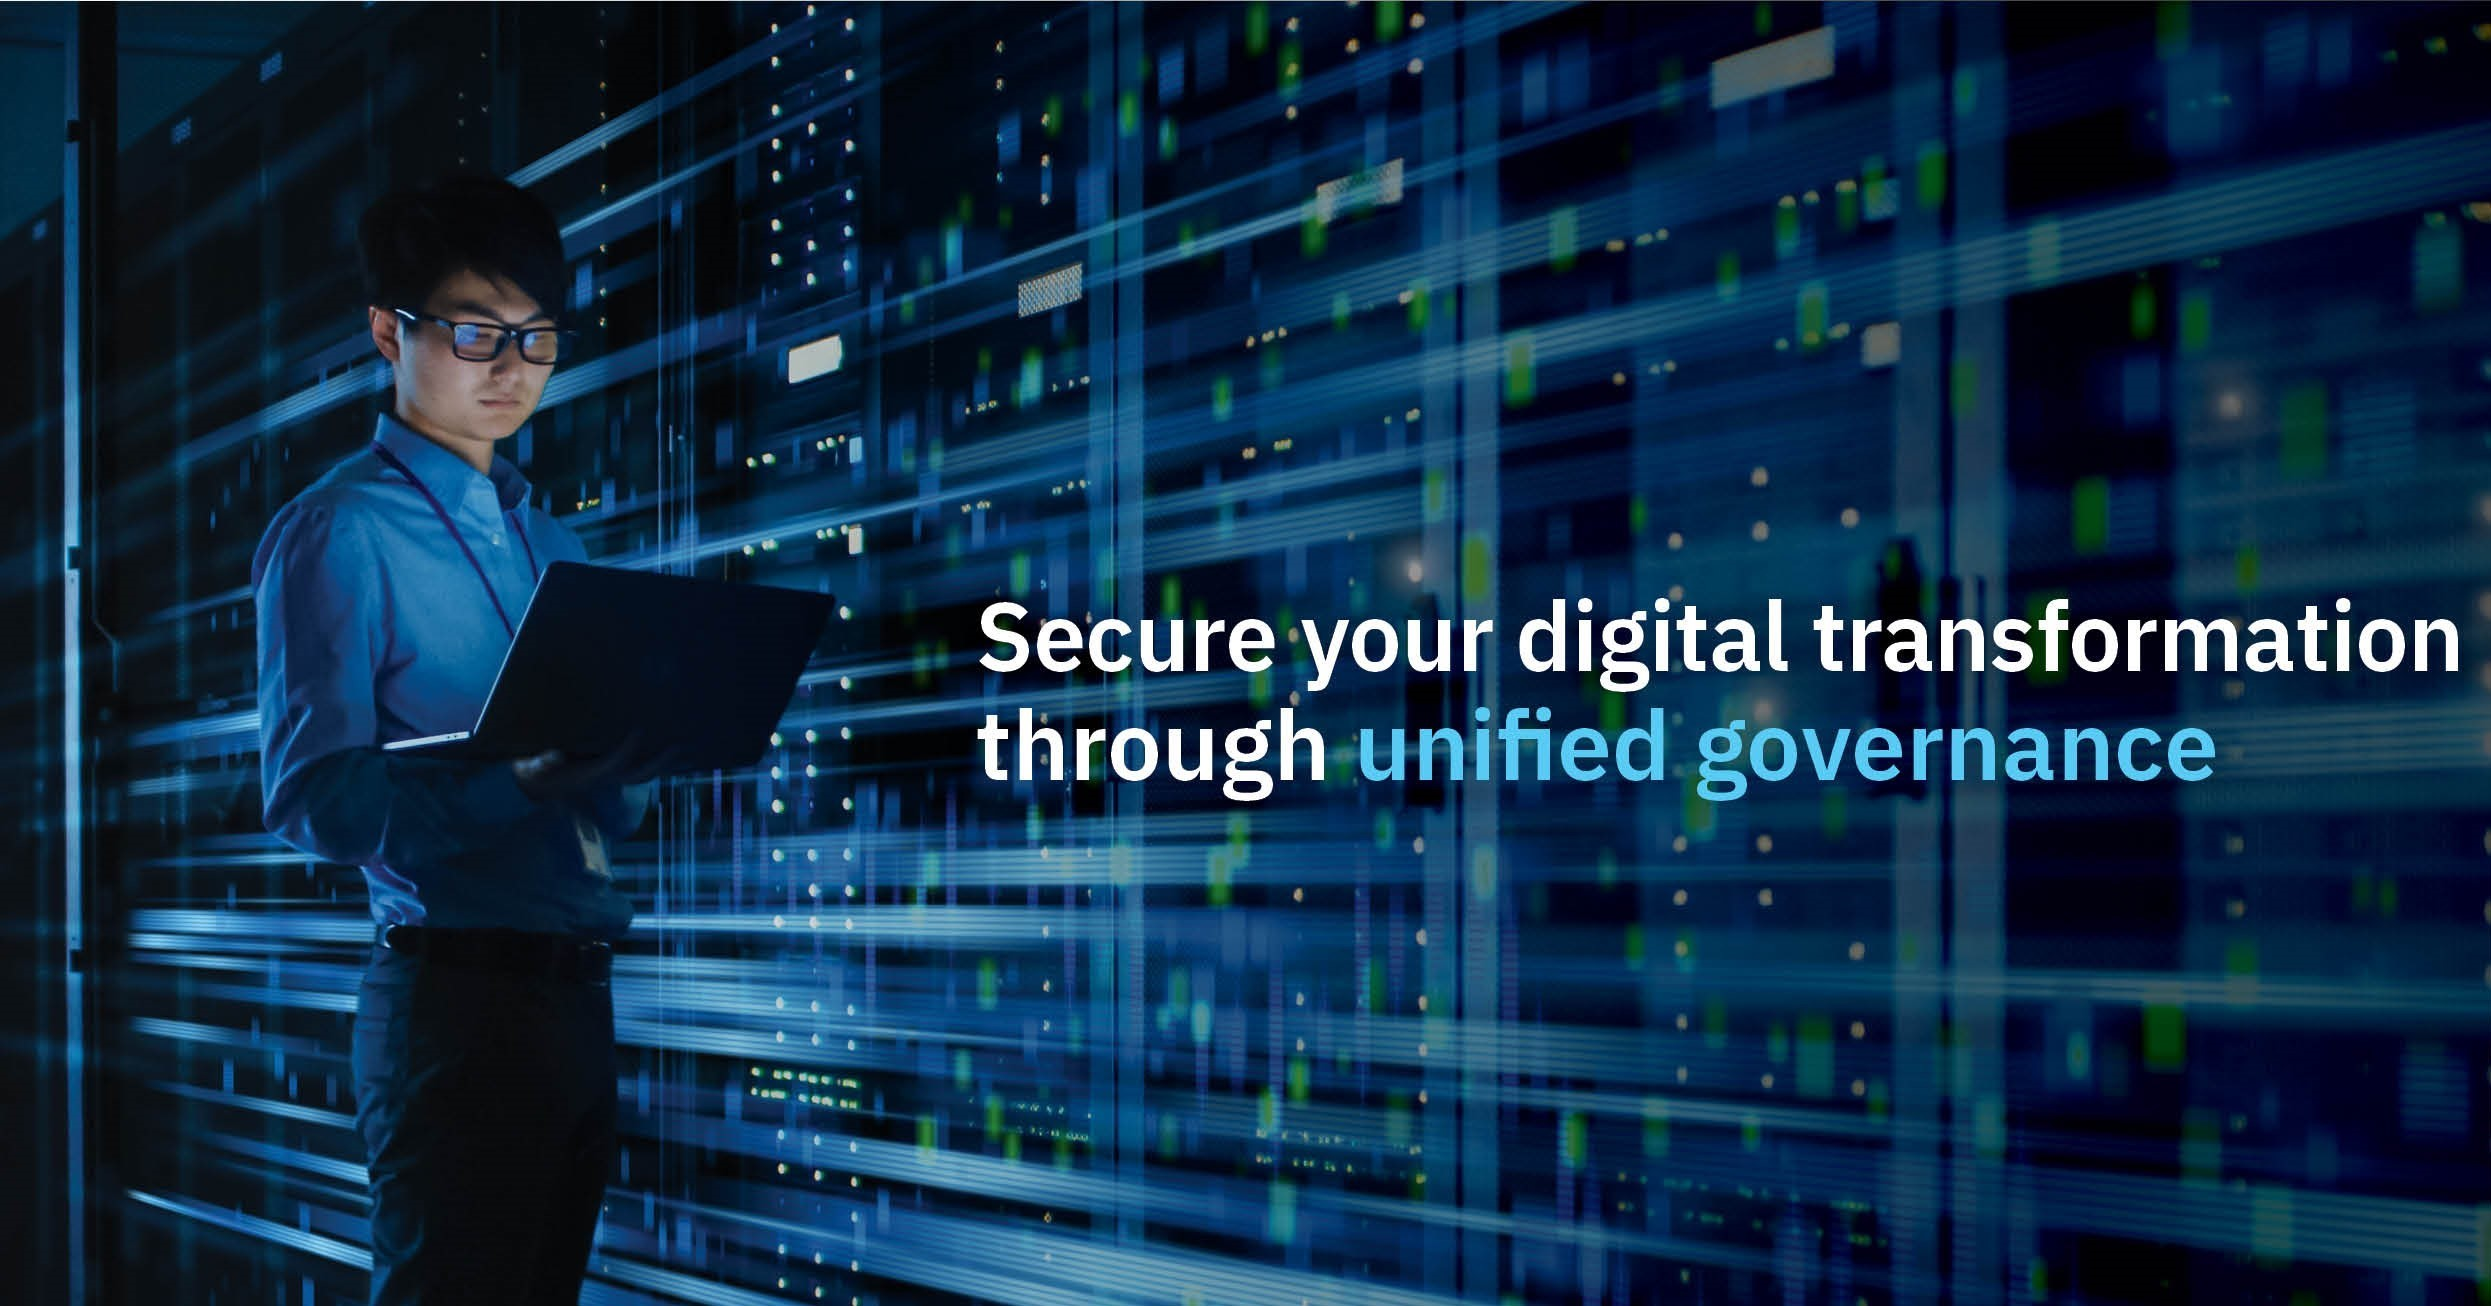 The importance of securing the ongoing digital transformation